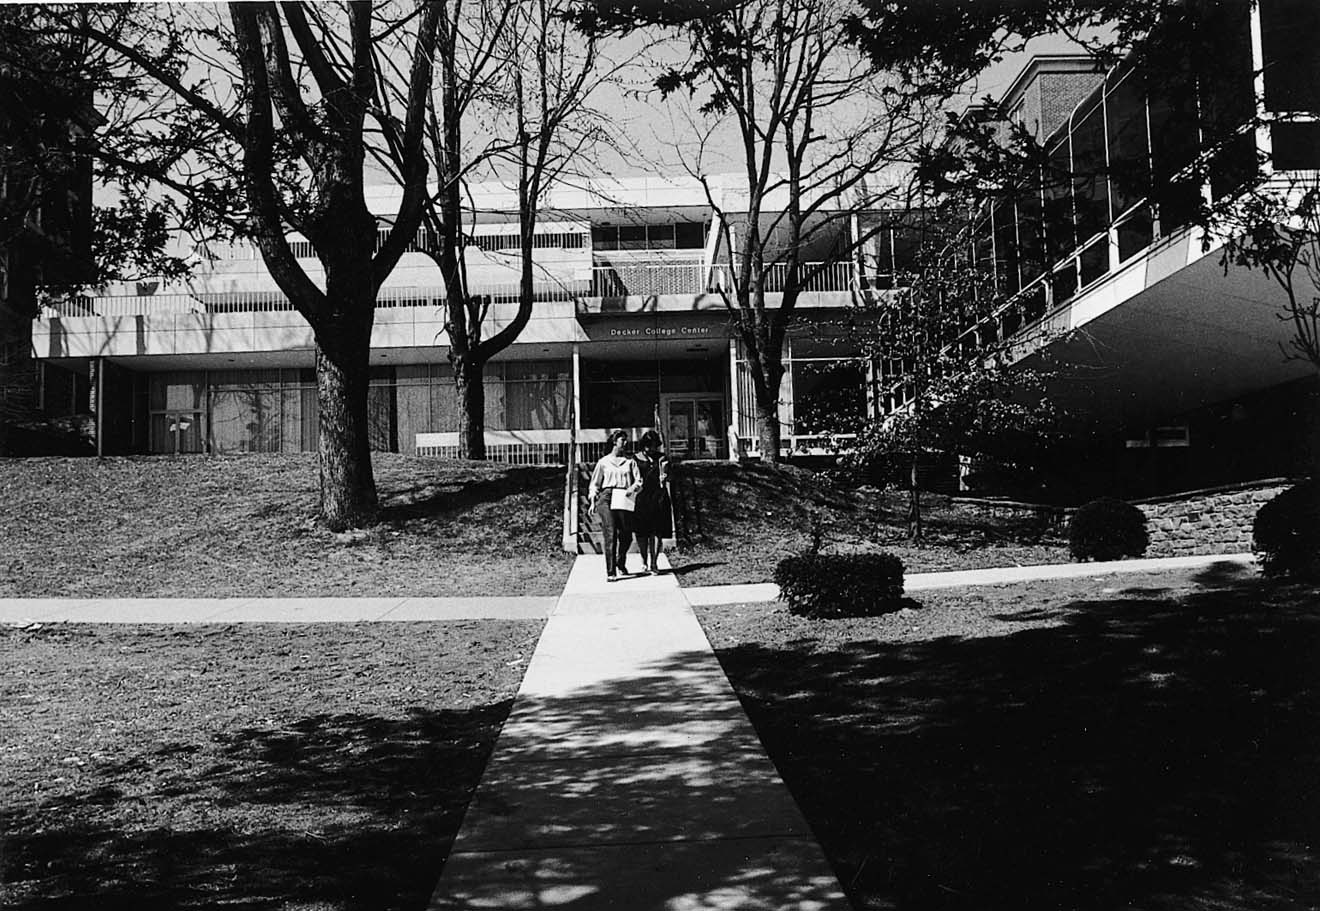 South side of Decker College Center circa 1980